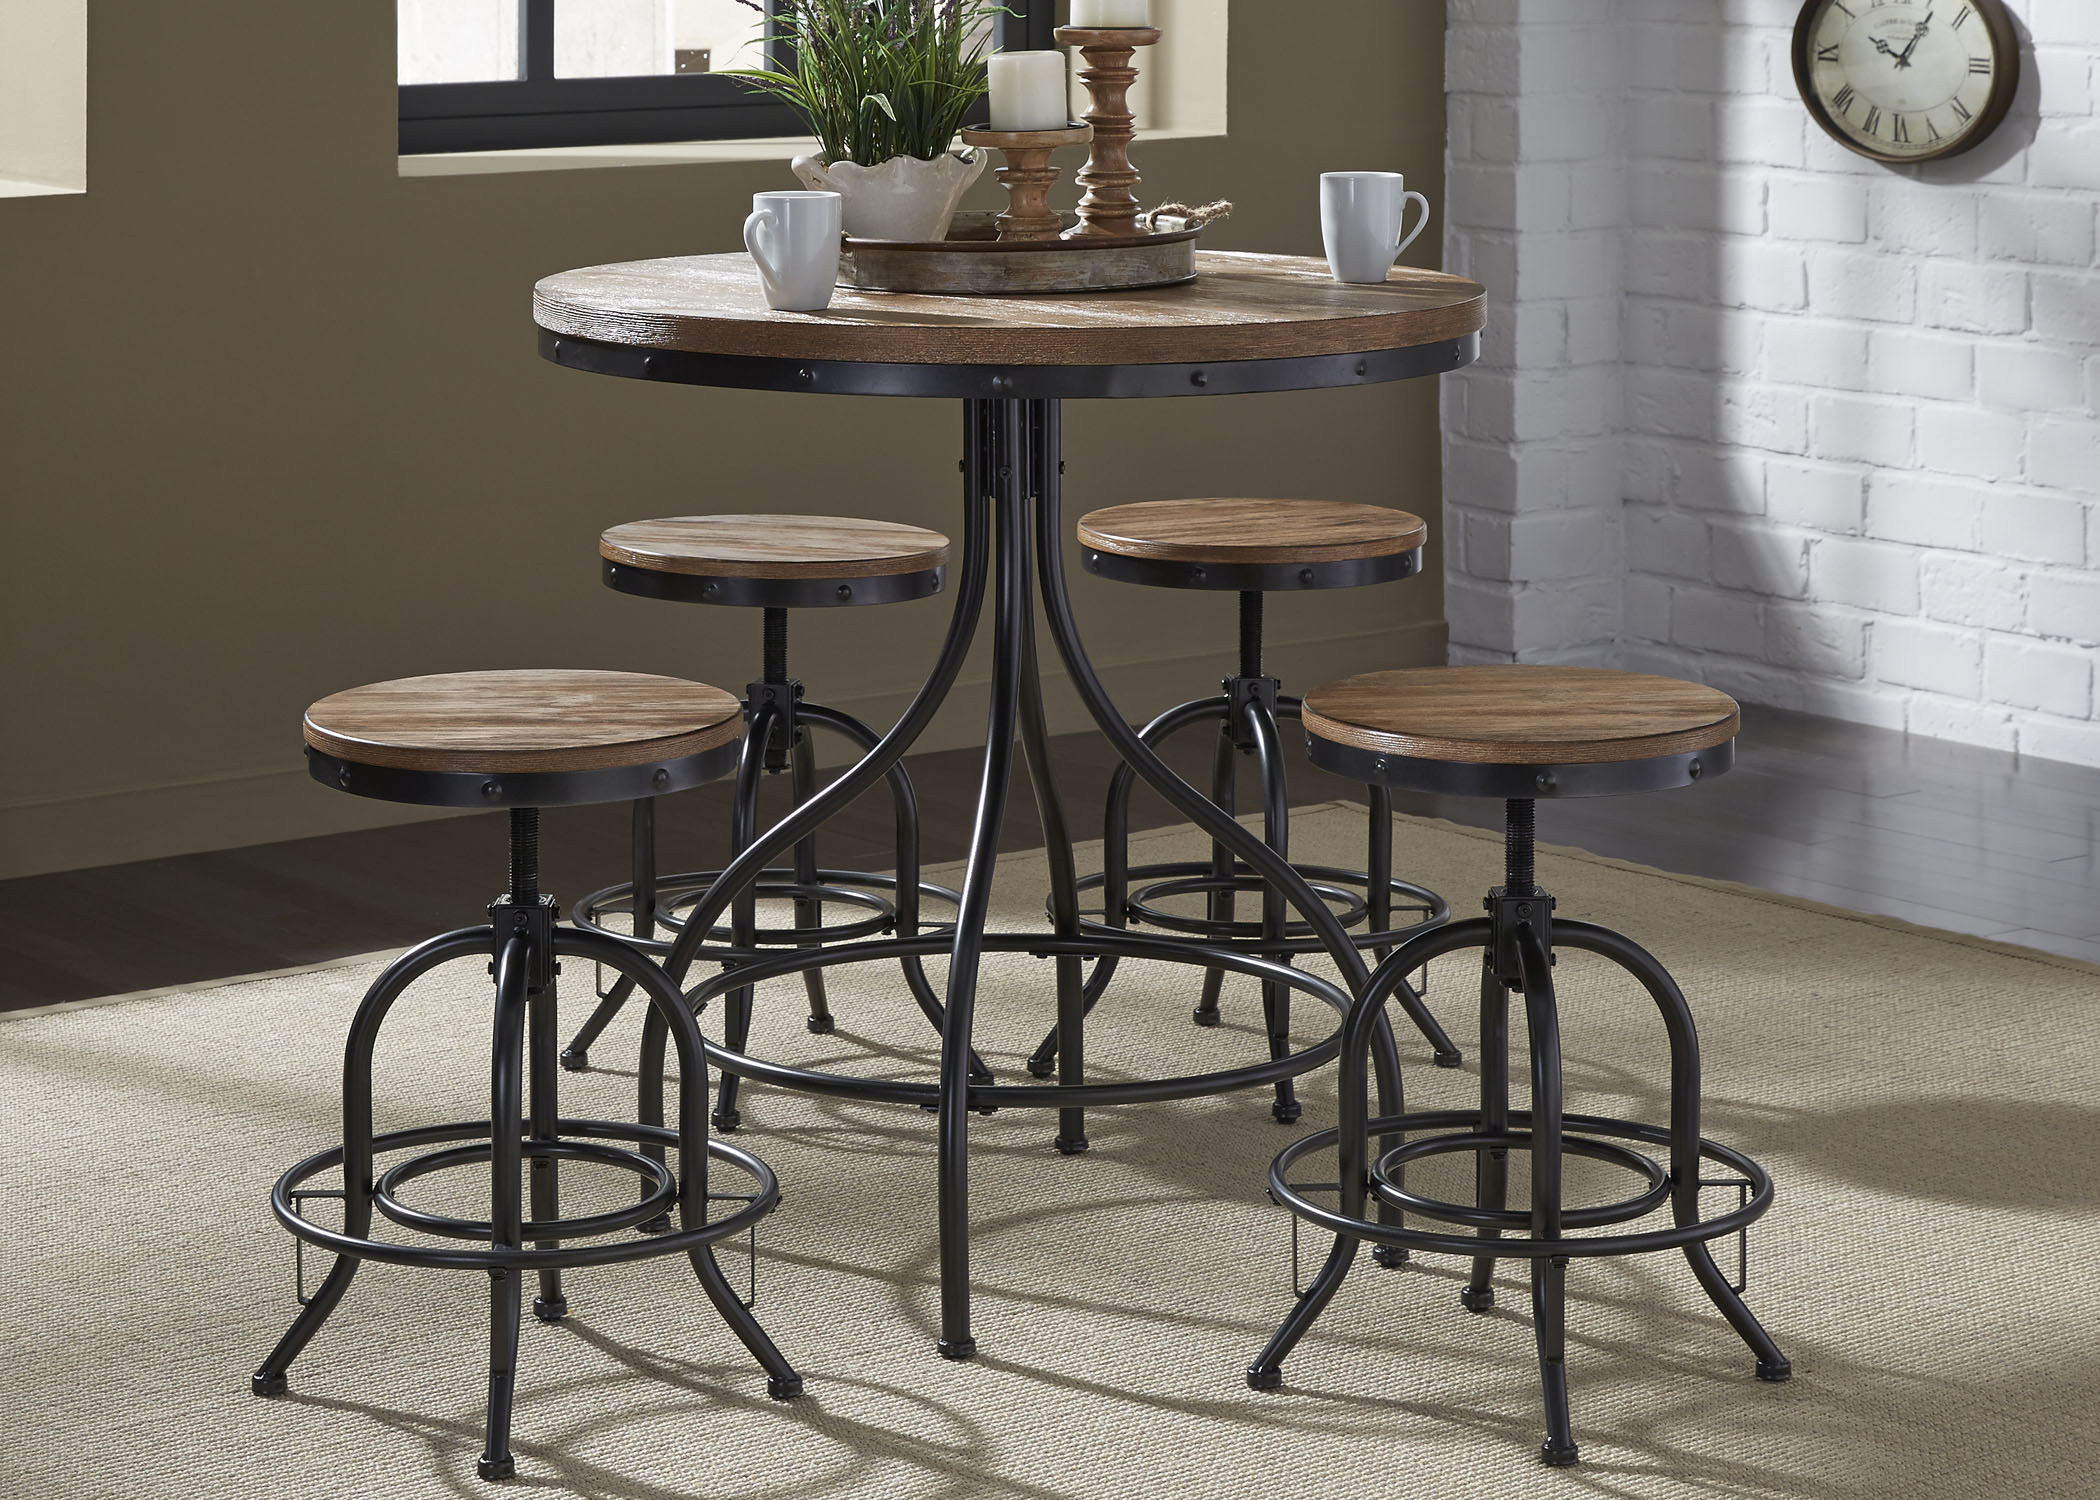 Vintage Dining Series 5-Piece Counter Height Pub Table Set by Libby at Walker's Furniture